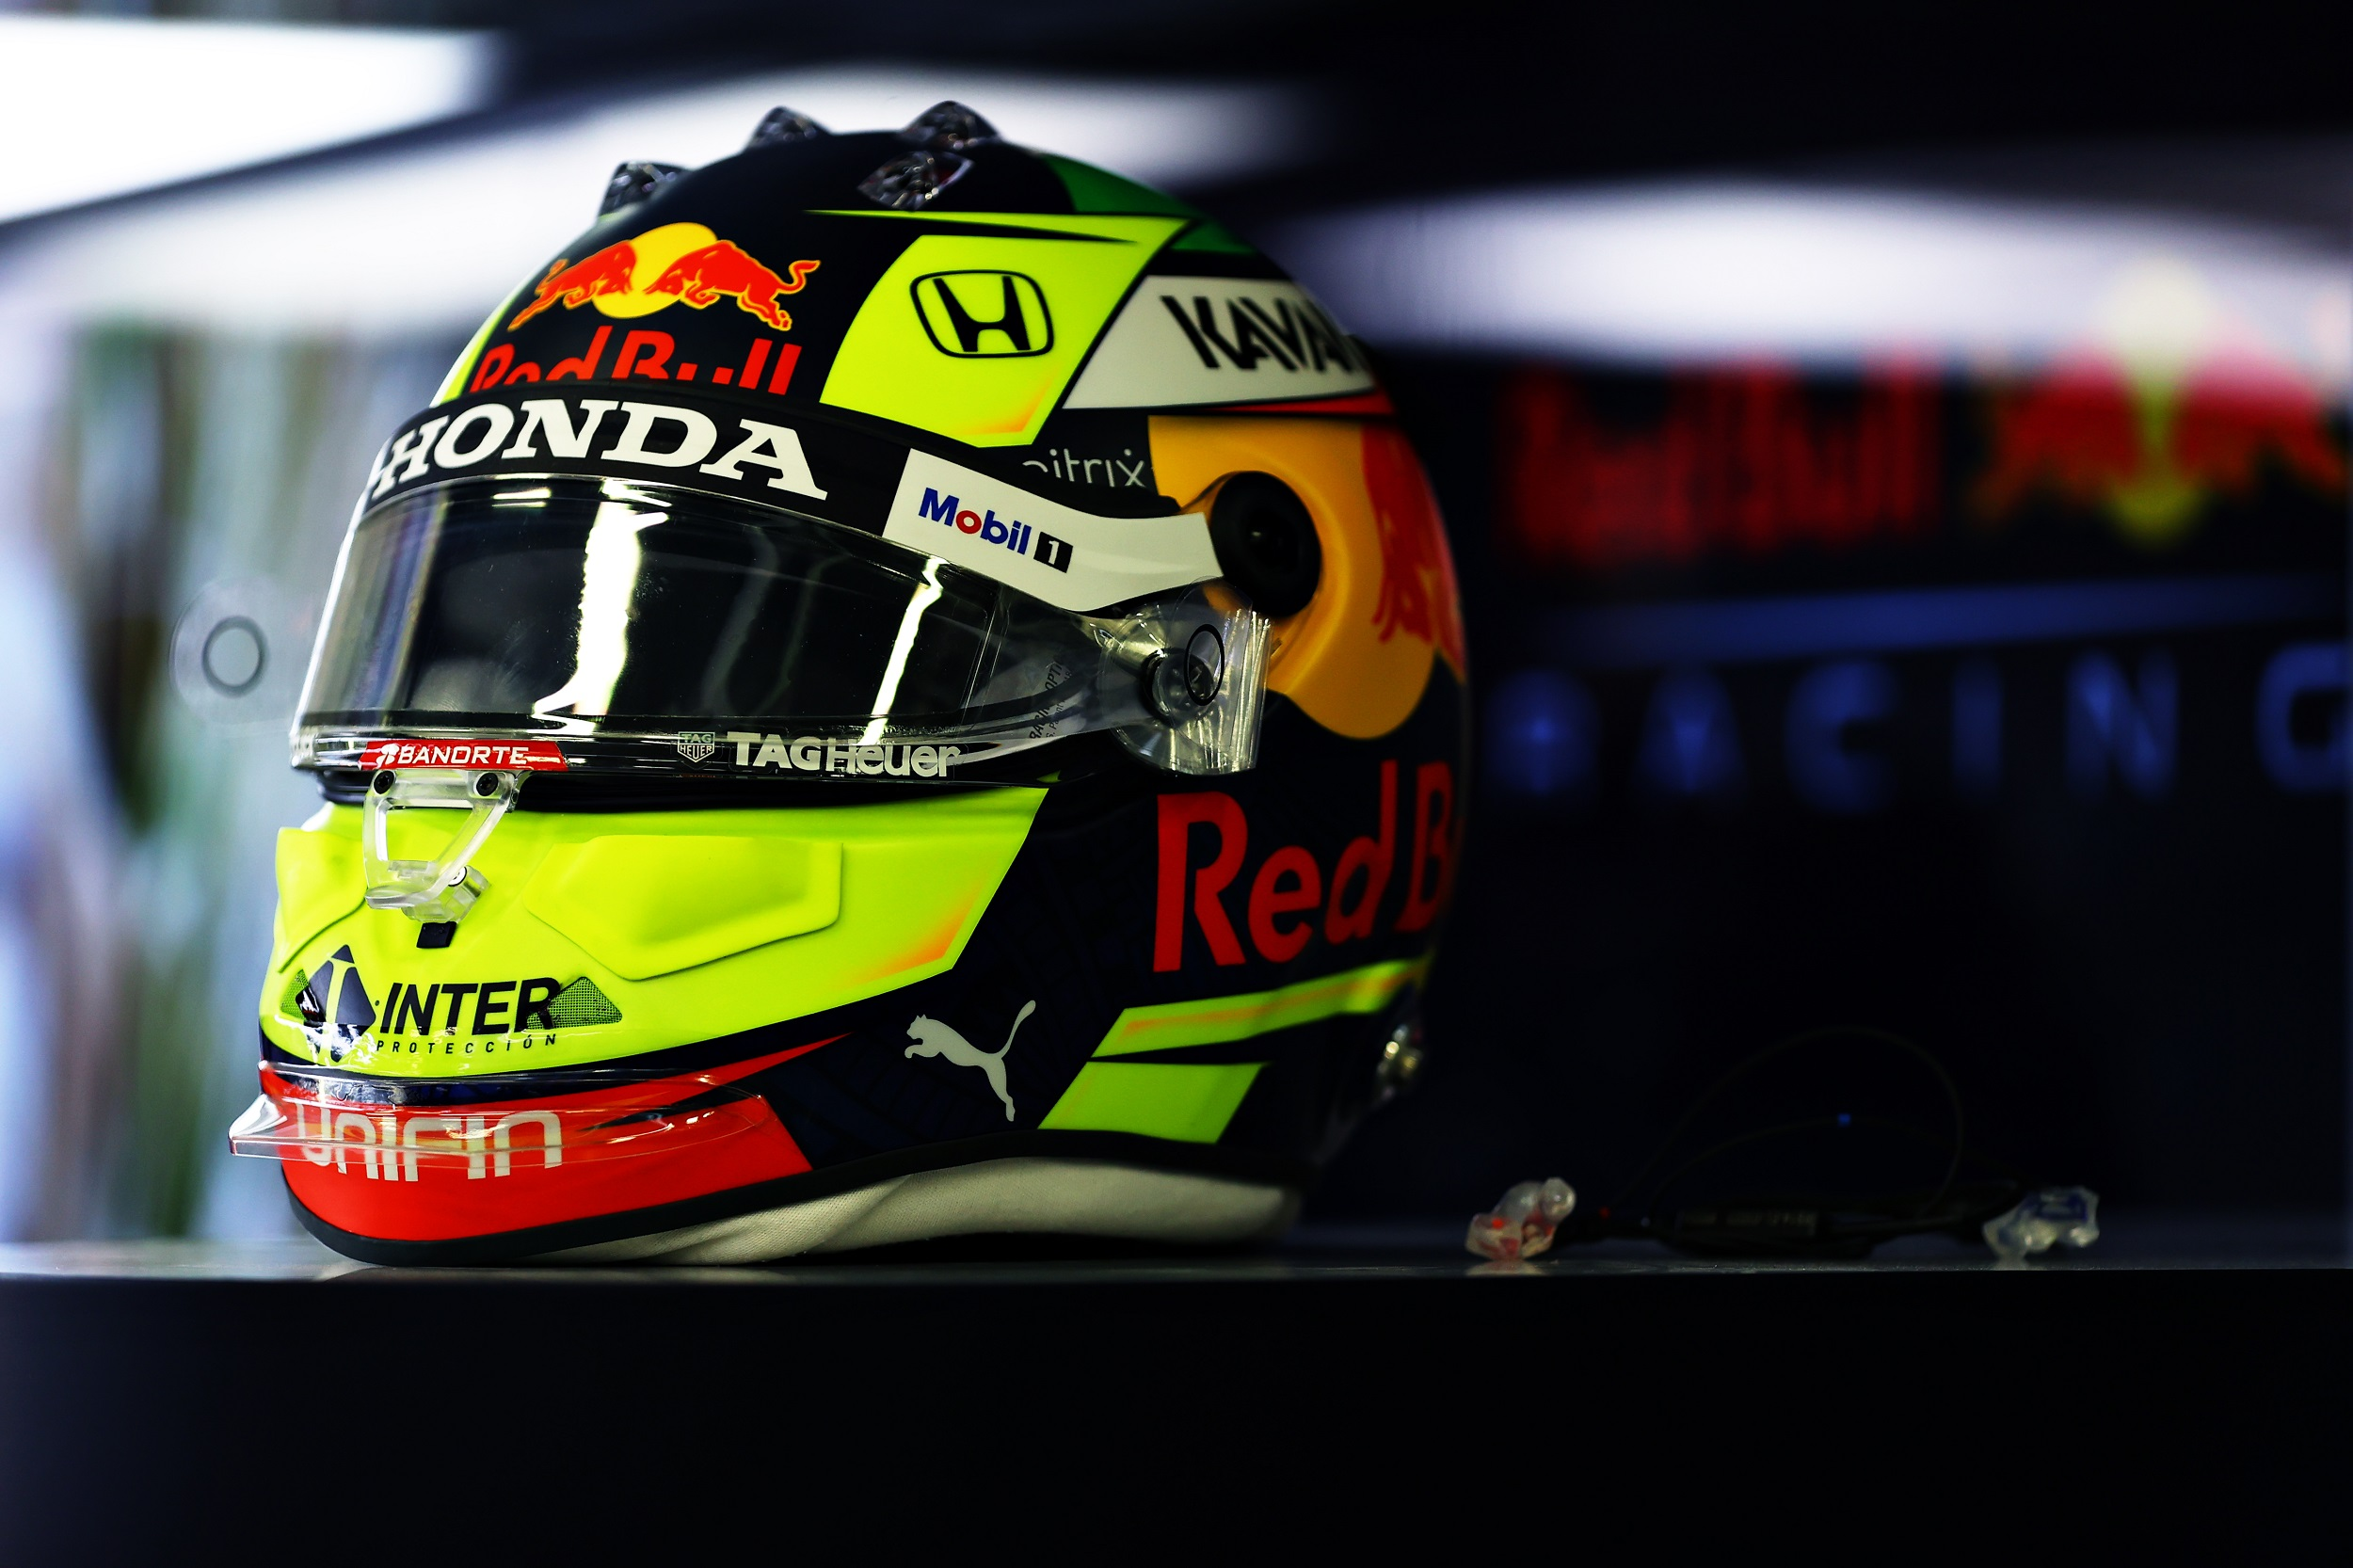 NORTHAMPTON, ENGLAND - FEBRUARY 22: <<enter caption here>> at Silverstone on February 22, 2021 in Northampton, England. (Photo by Mark Thompson/Getty Images for Red Bull Racing)